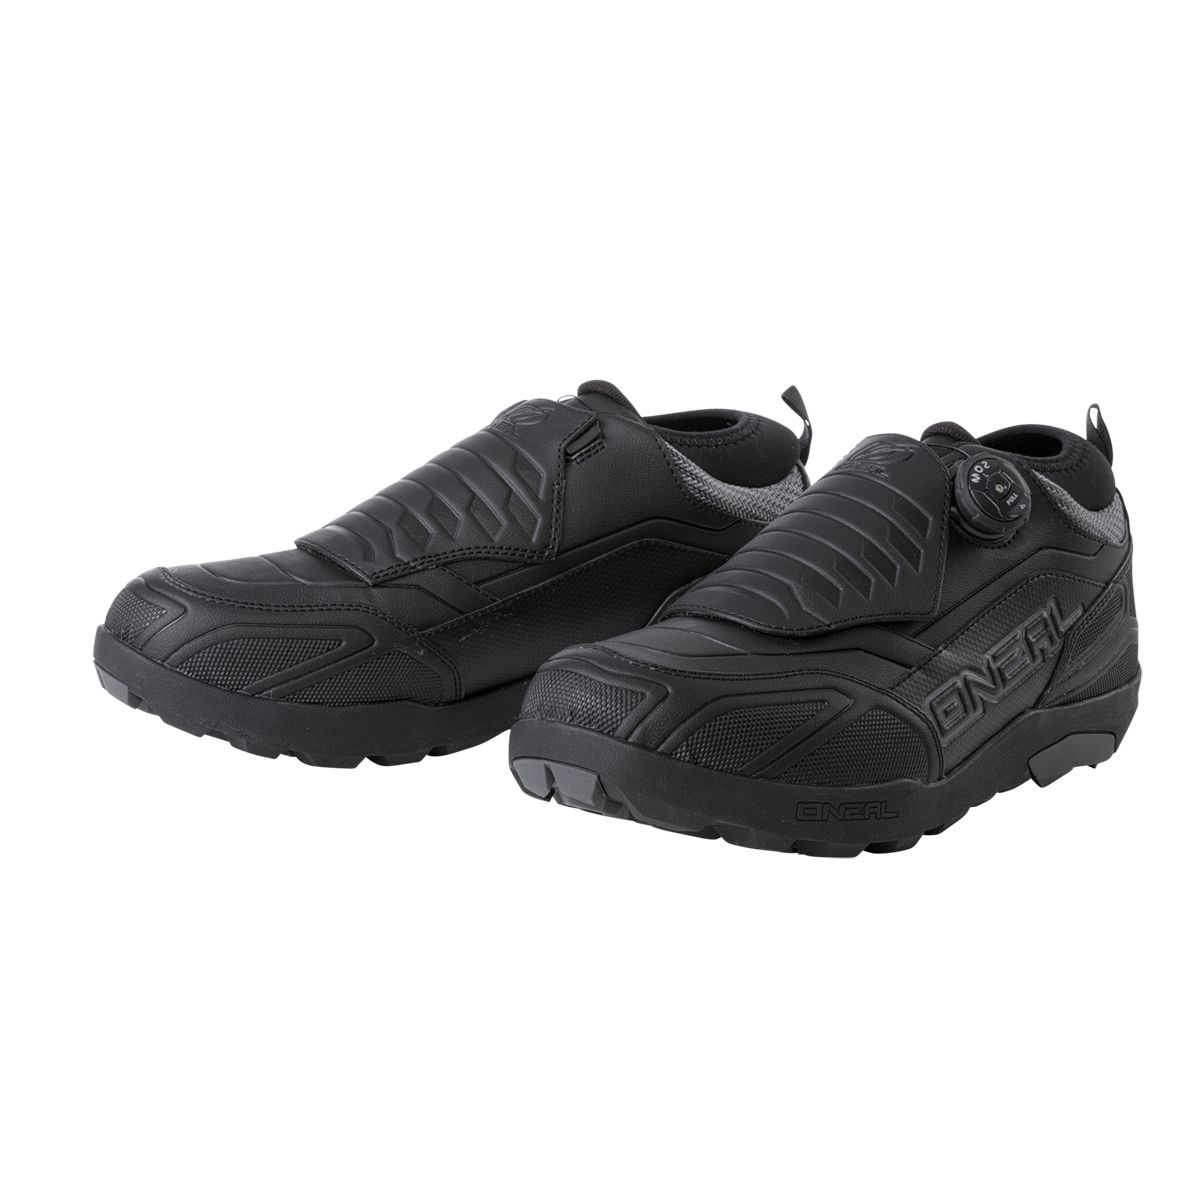 O'NEAL LOAM WP SPD MTB Shoes | Sko